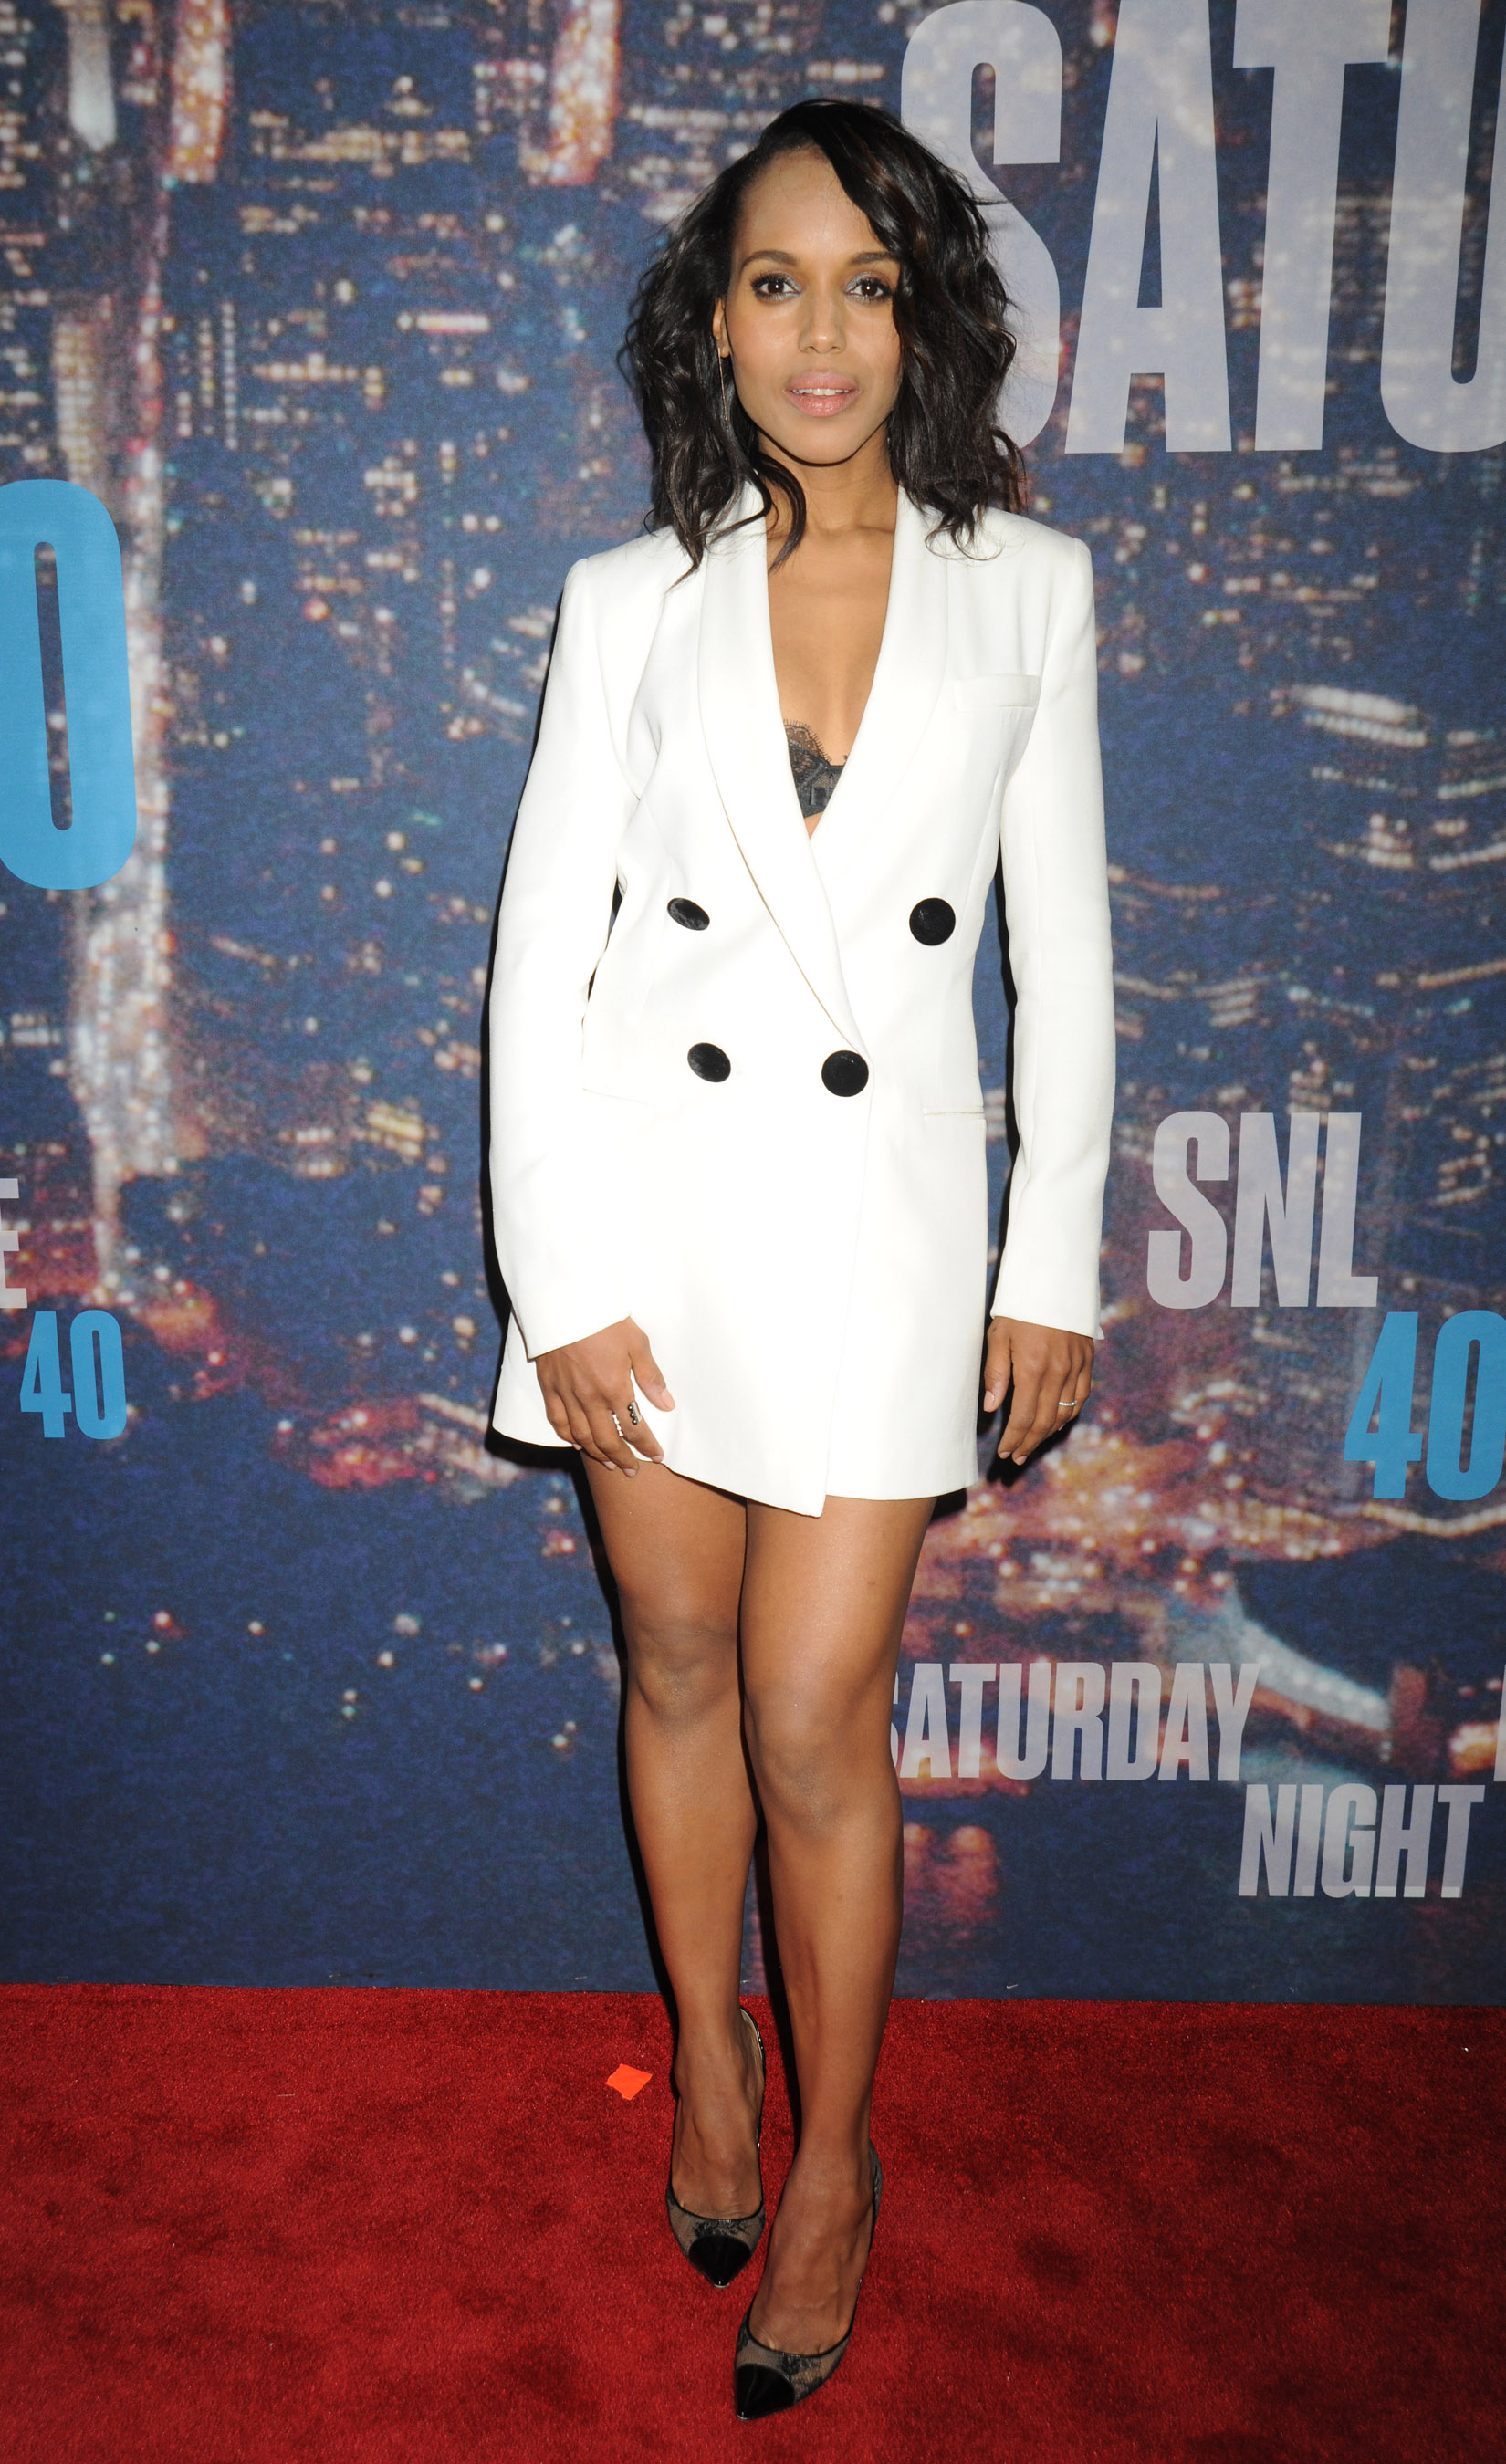 kerry washington SNL 40